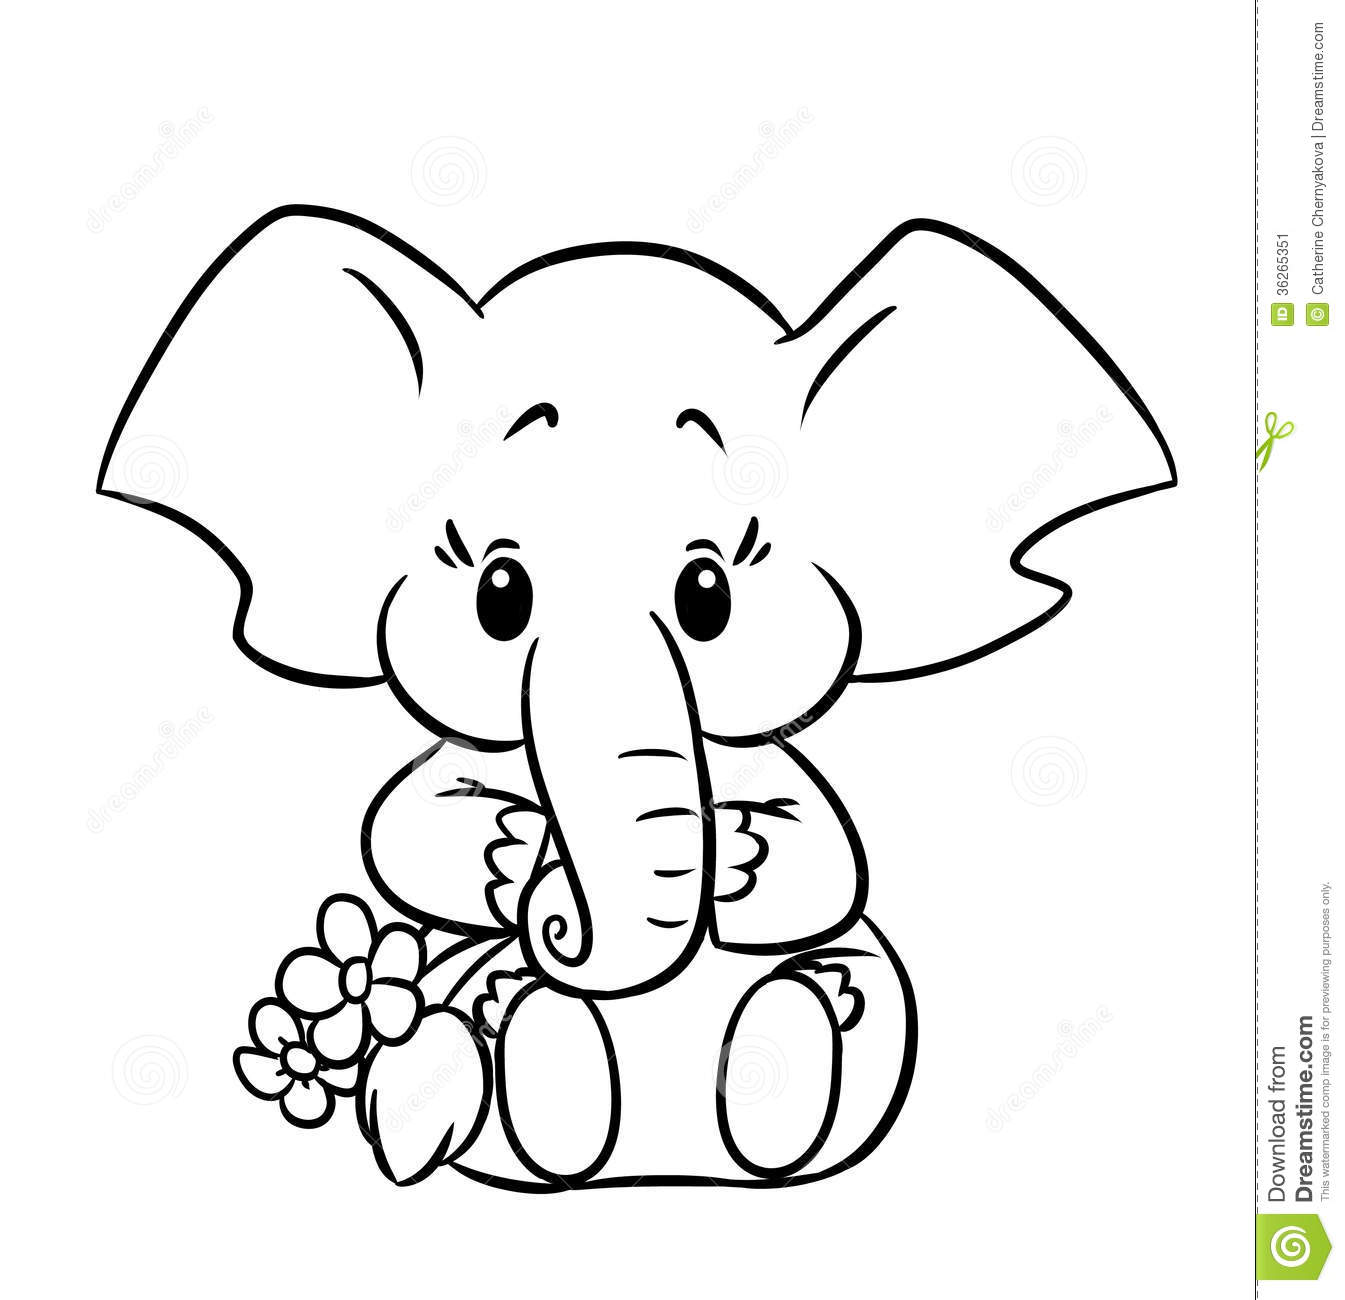 free coloring pages of elephant - photo#2